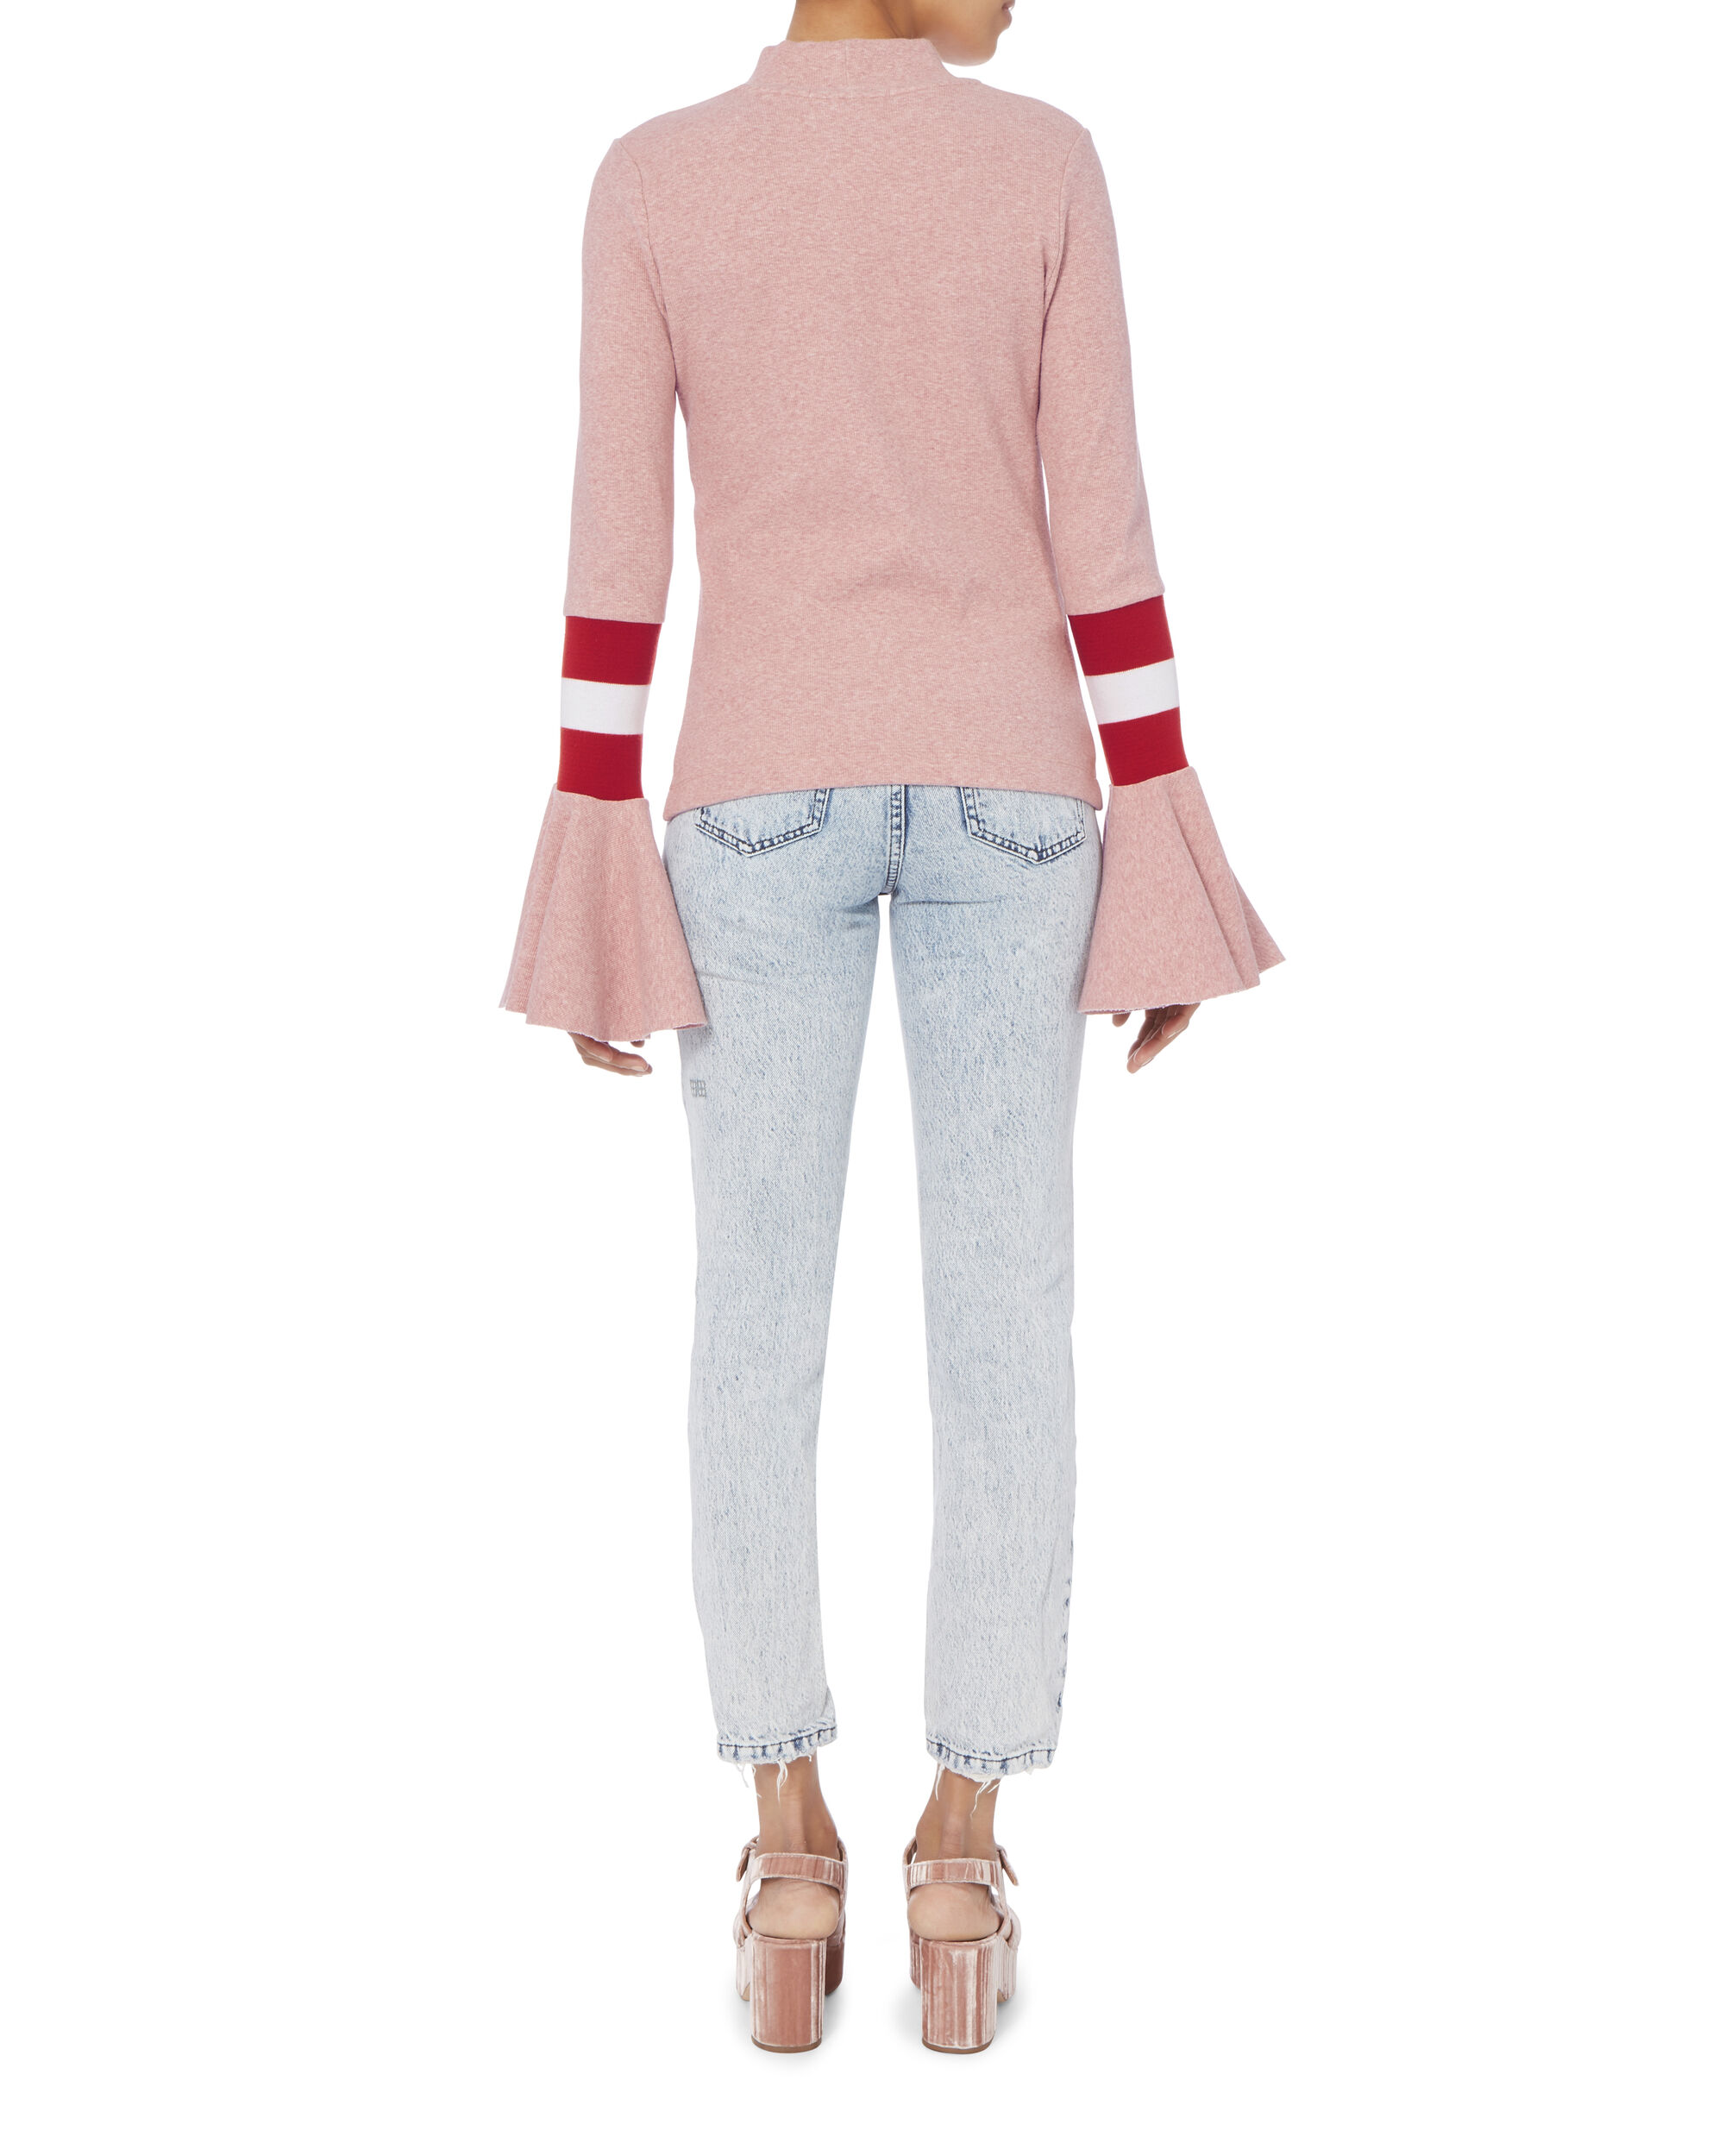 Stronger Than You Know Ruffle Sleeve Top, PINK, hi-res